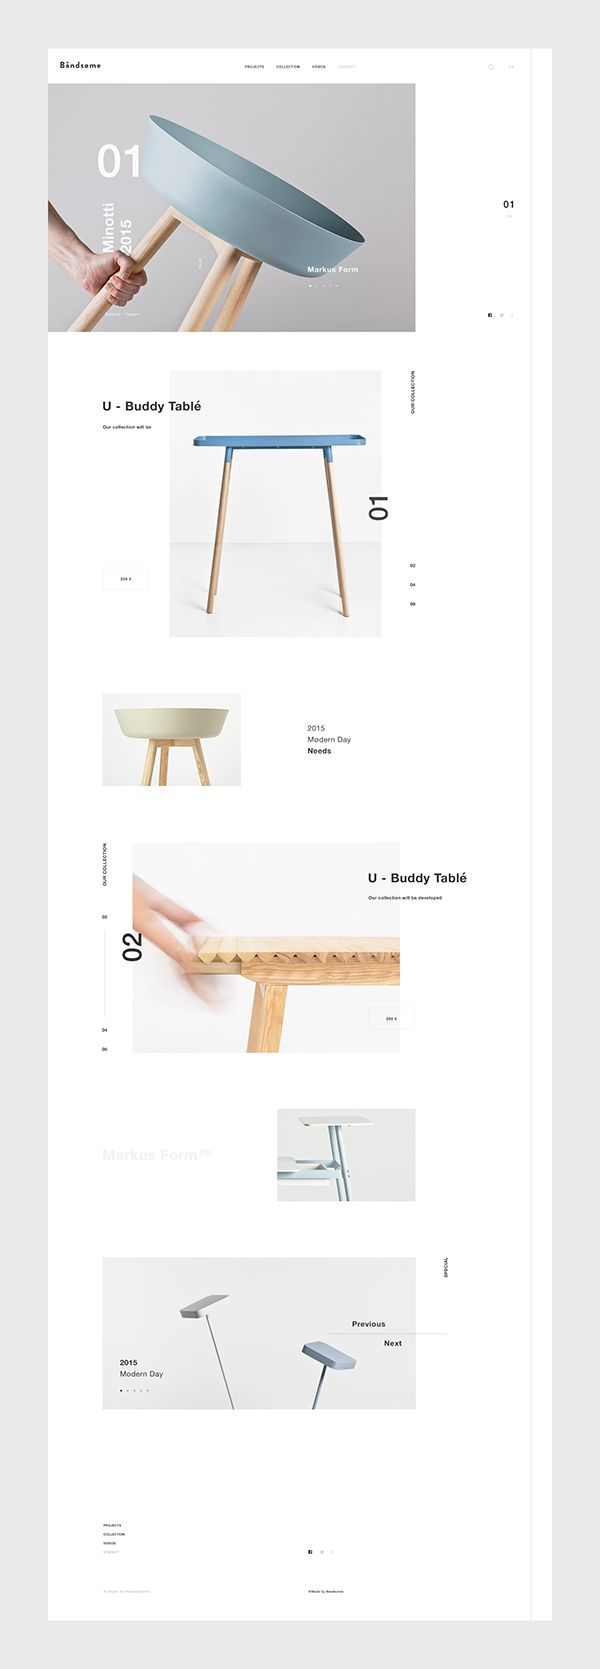 Back to my posts about web design, UI and UX. Today I want to feature a project I saw on Pinterest titled Bandsøme and it's a web site for a modern furniture design store.